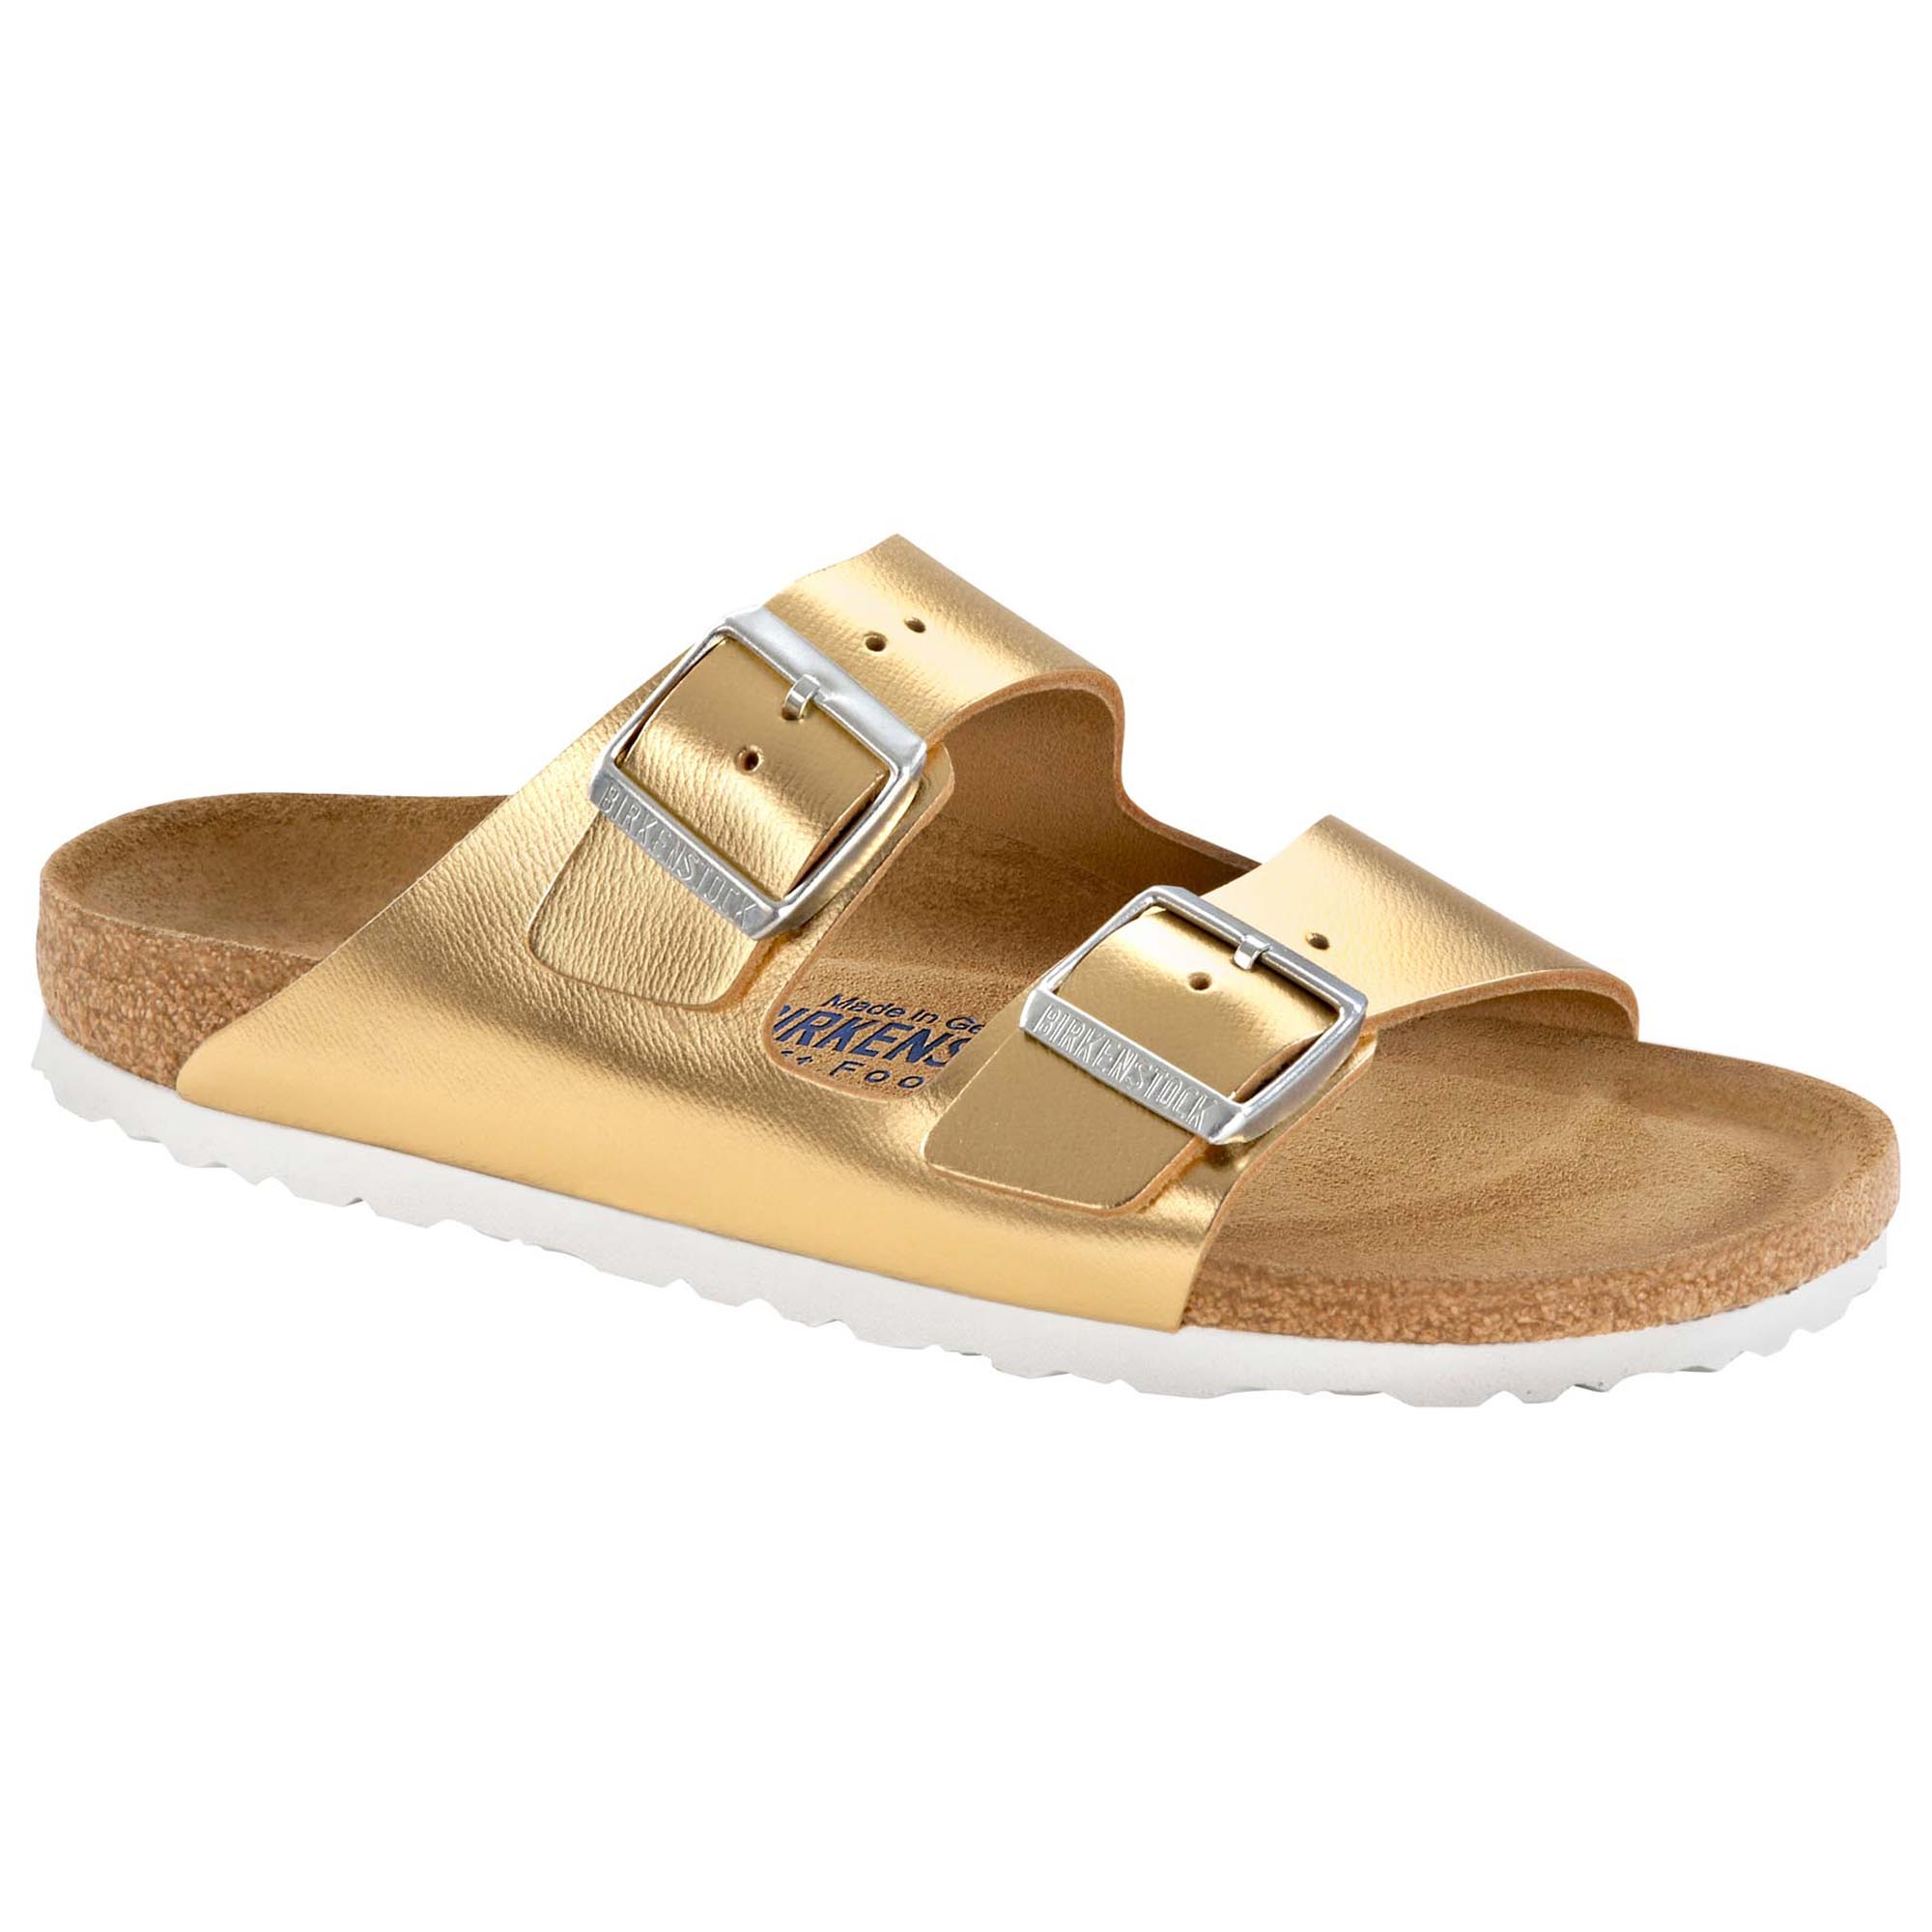 Arizona Natural Leather Sirocco Gold Shop Online At Birkenstock